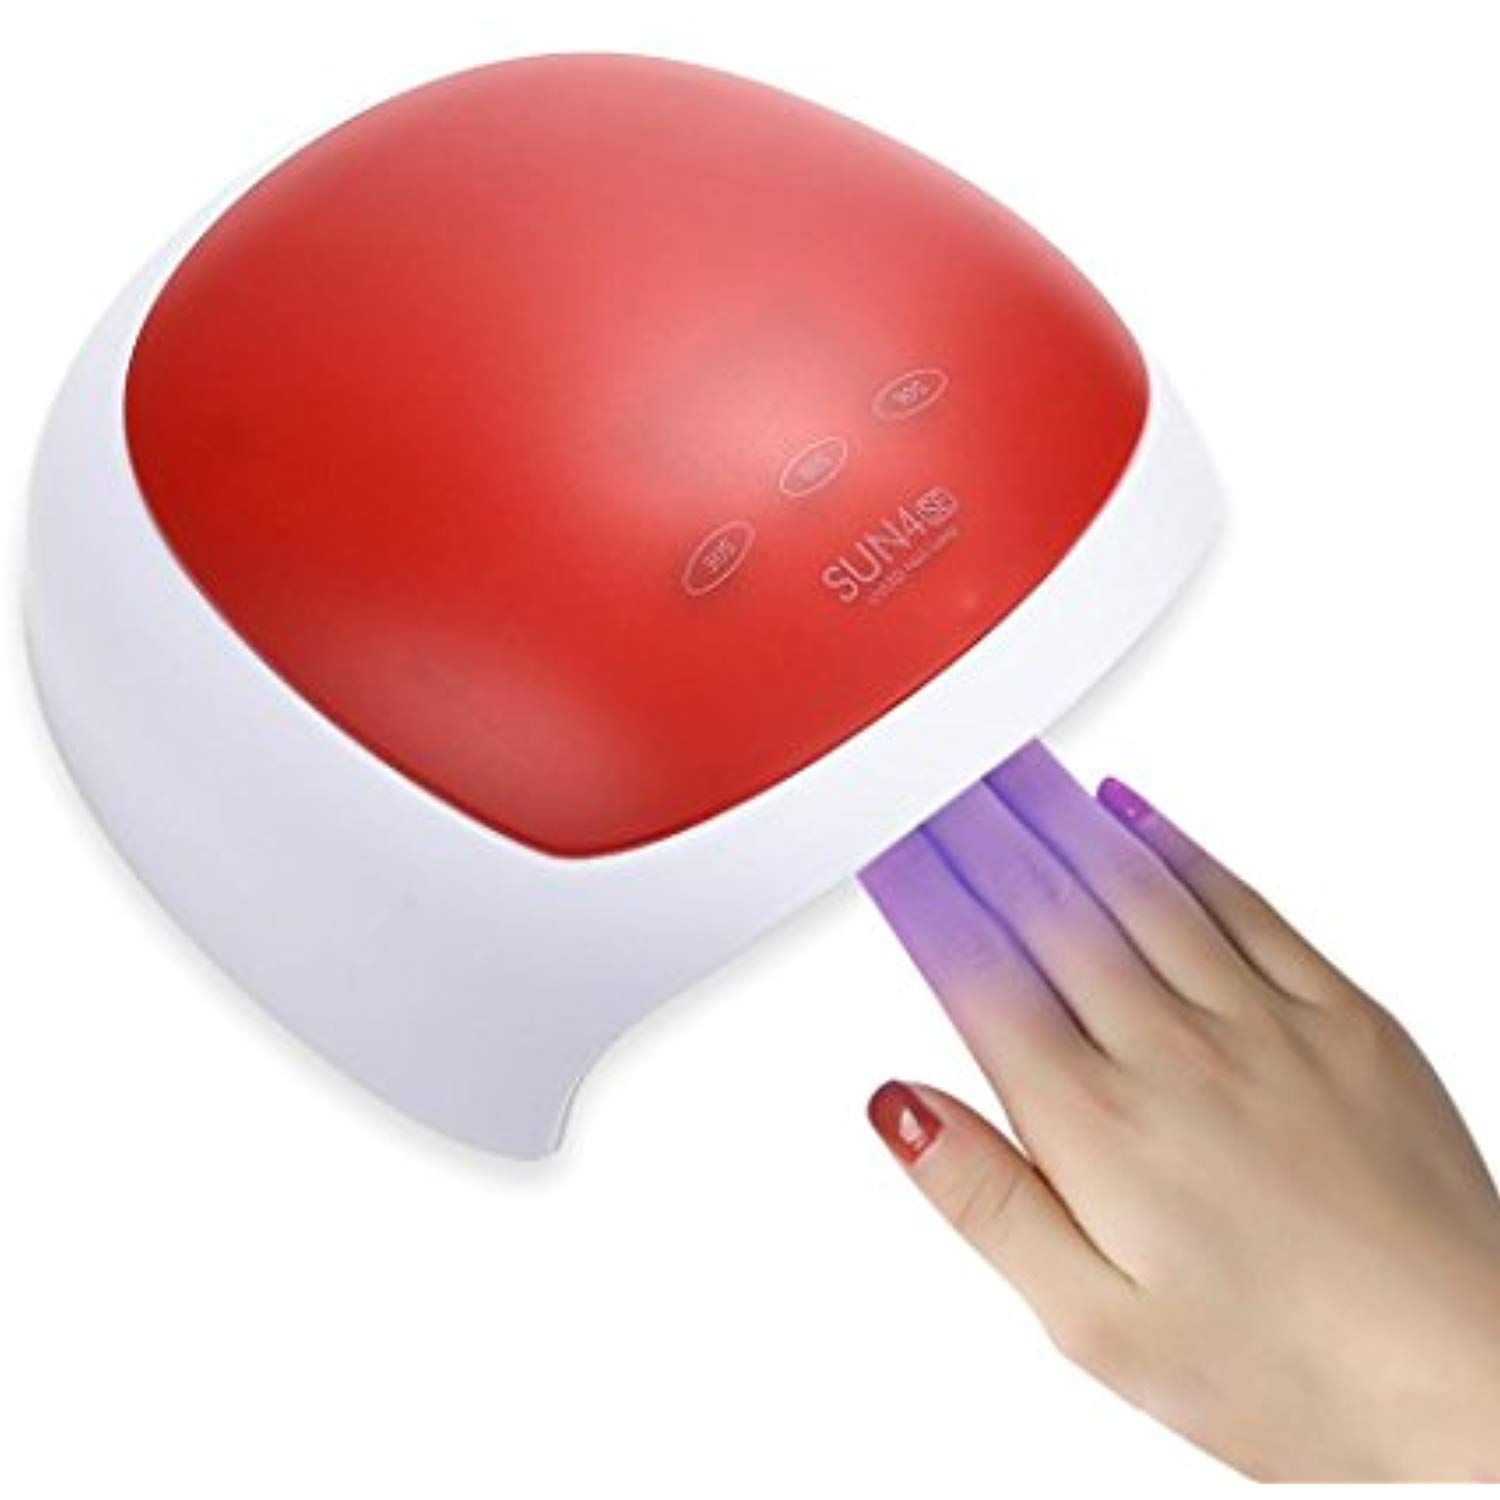 Nail Dryers For Gel And Regular Polish Electric Nail Dryer For Regular Polish Makeupstore 24w Led Drying Curing Machine Tool Machine Tools Uv Nails Nail Dryer